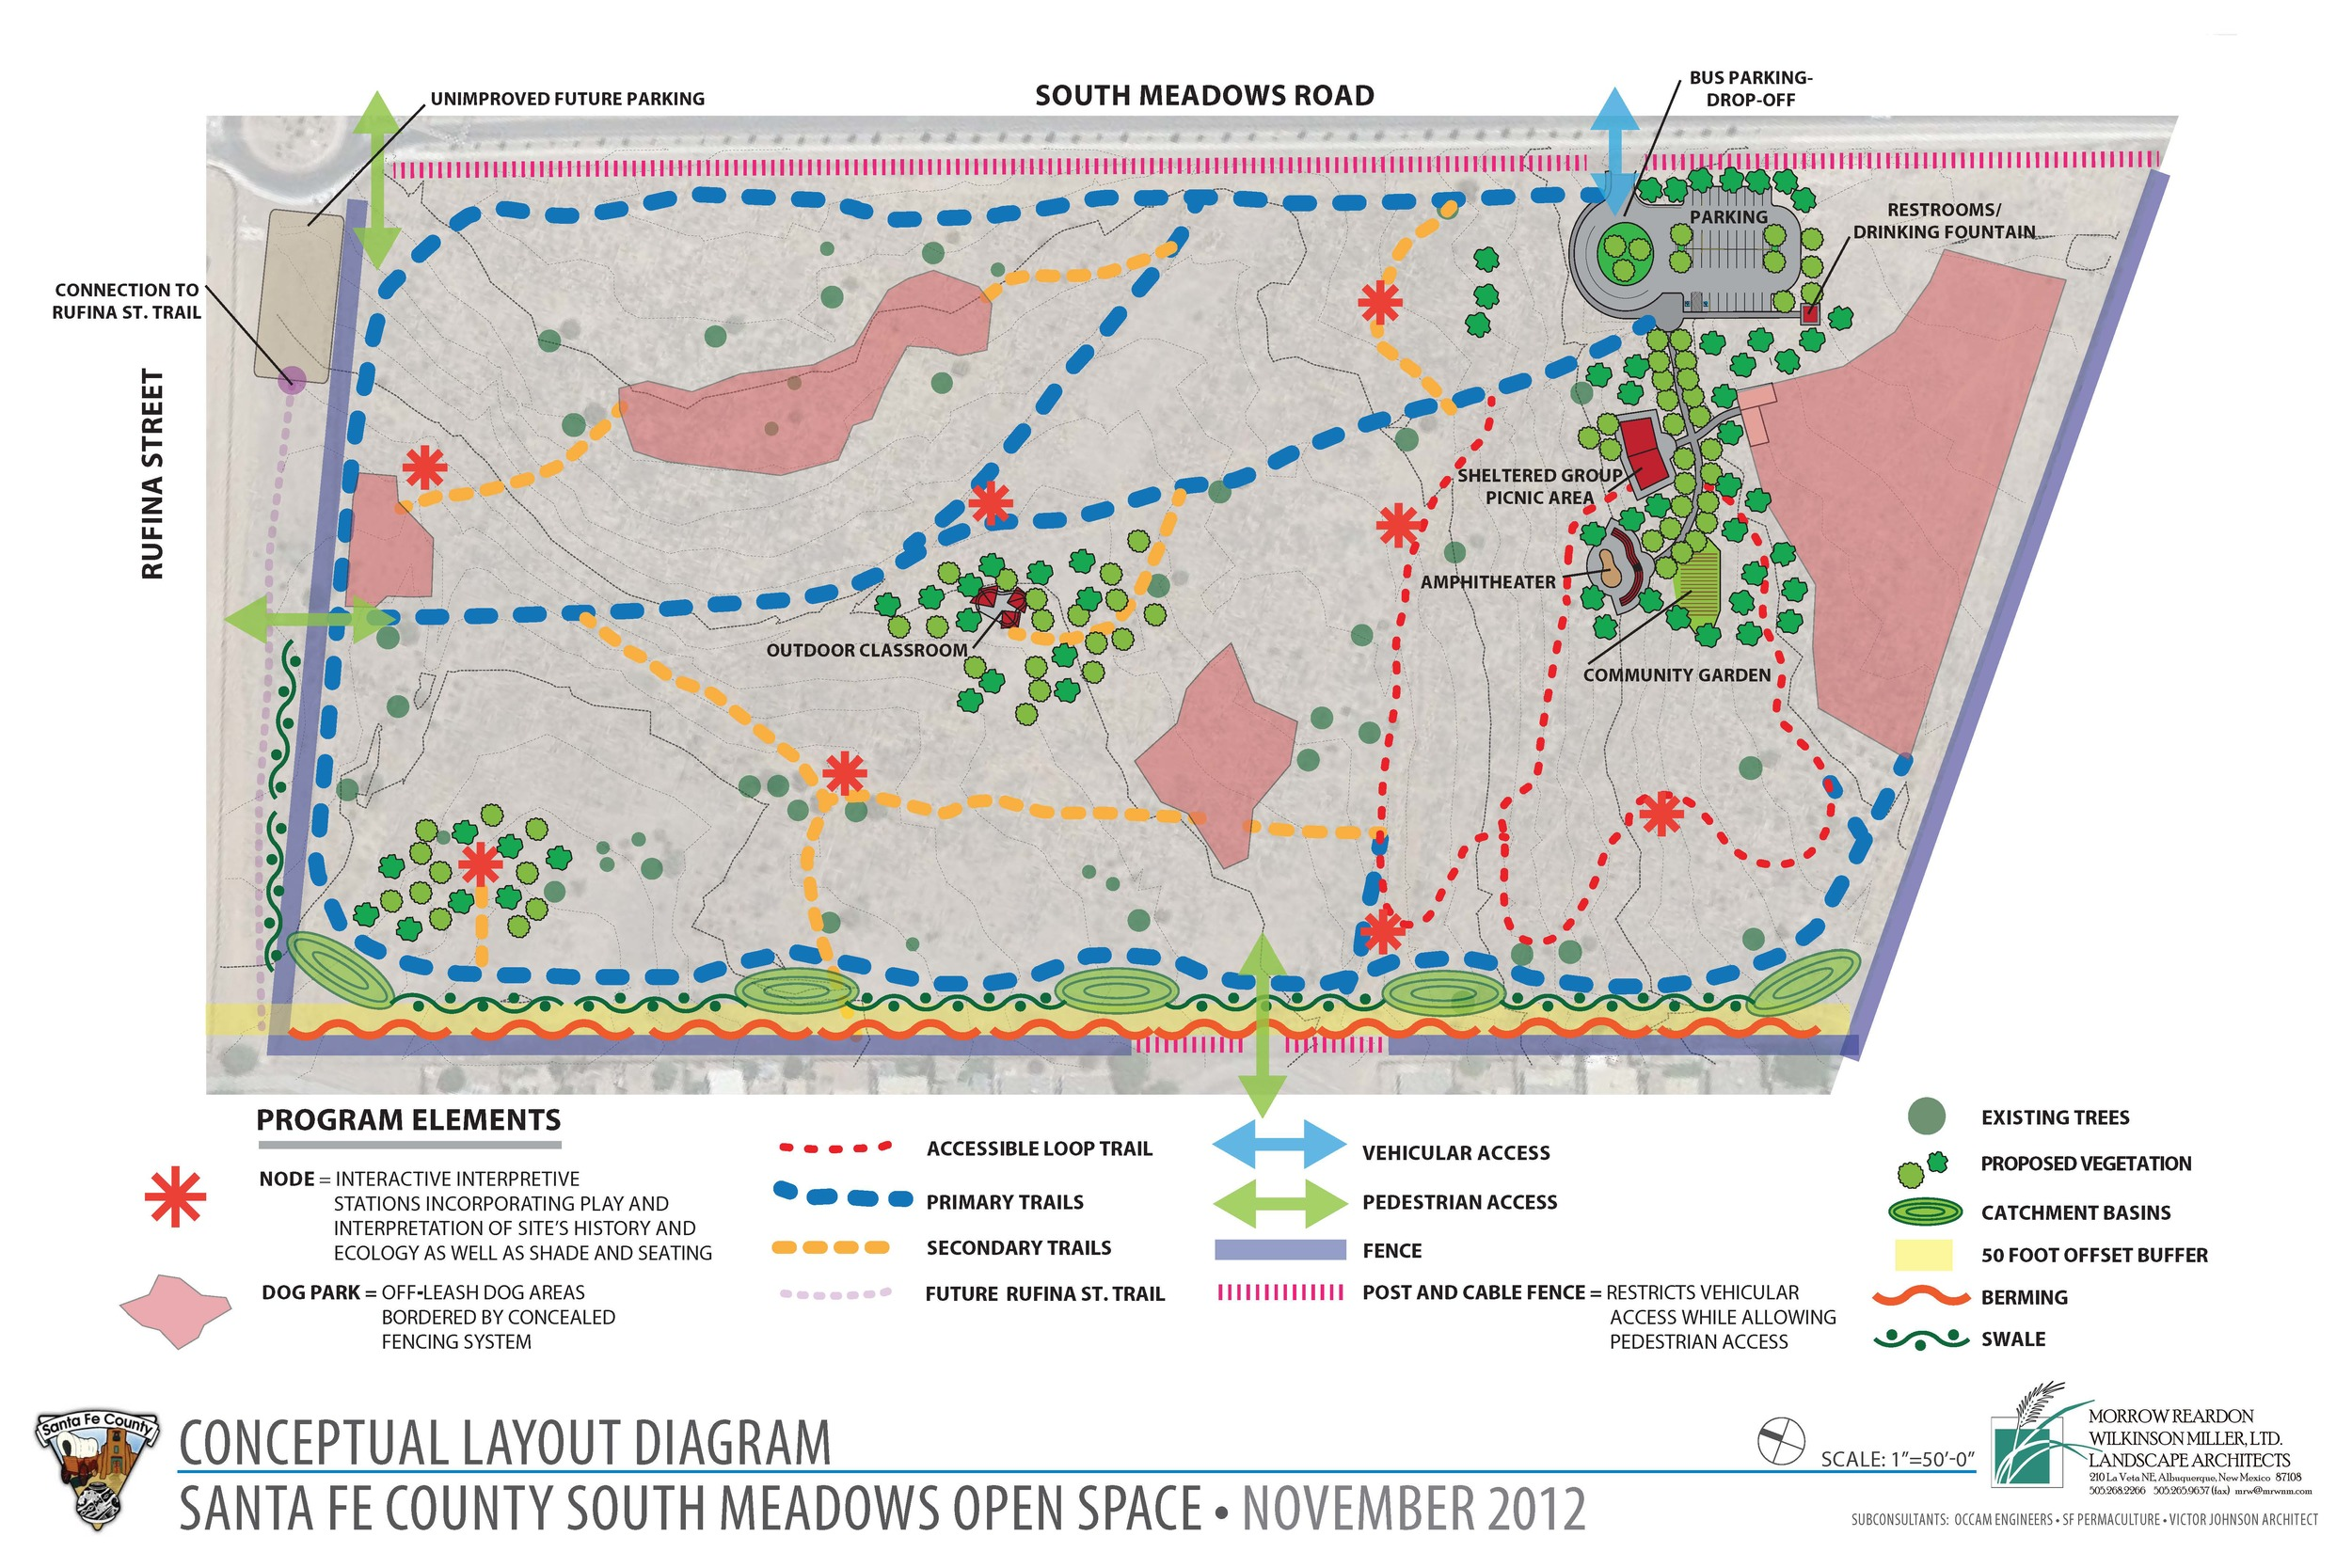 Circulation and organization of program elements for South Meadows Open Space